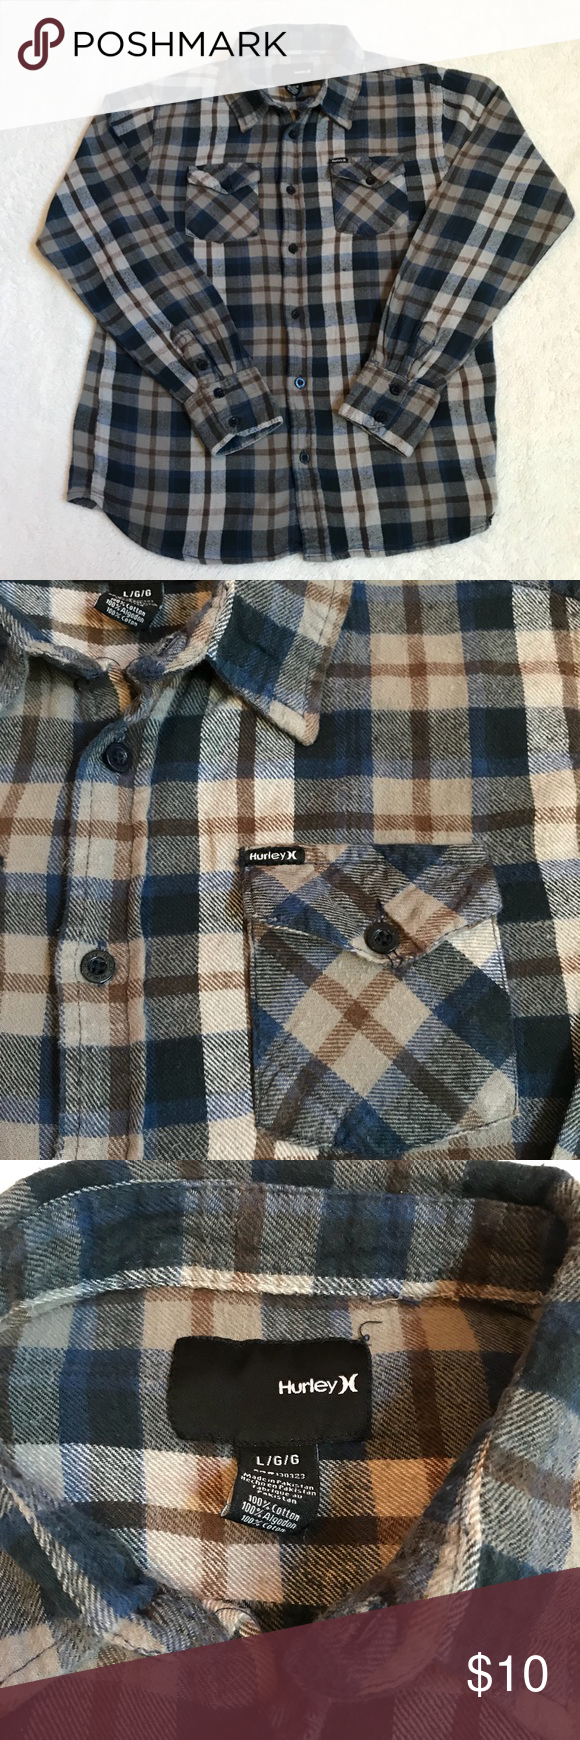 Boys Hurley flannel shirt  Hurley Flannel shirts and Flannels